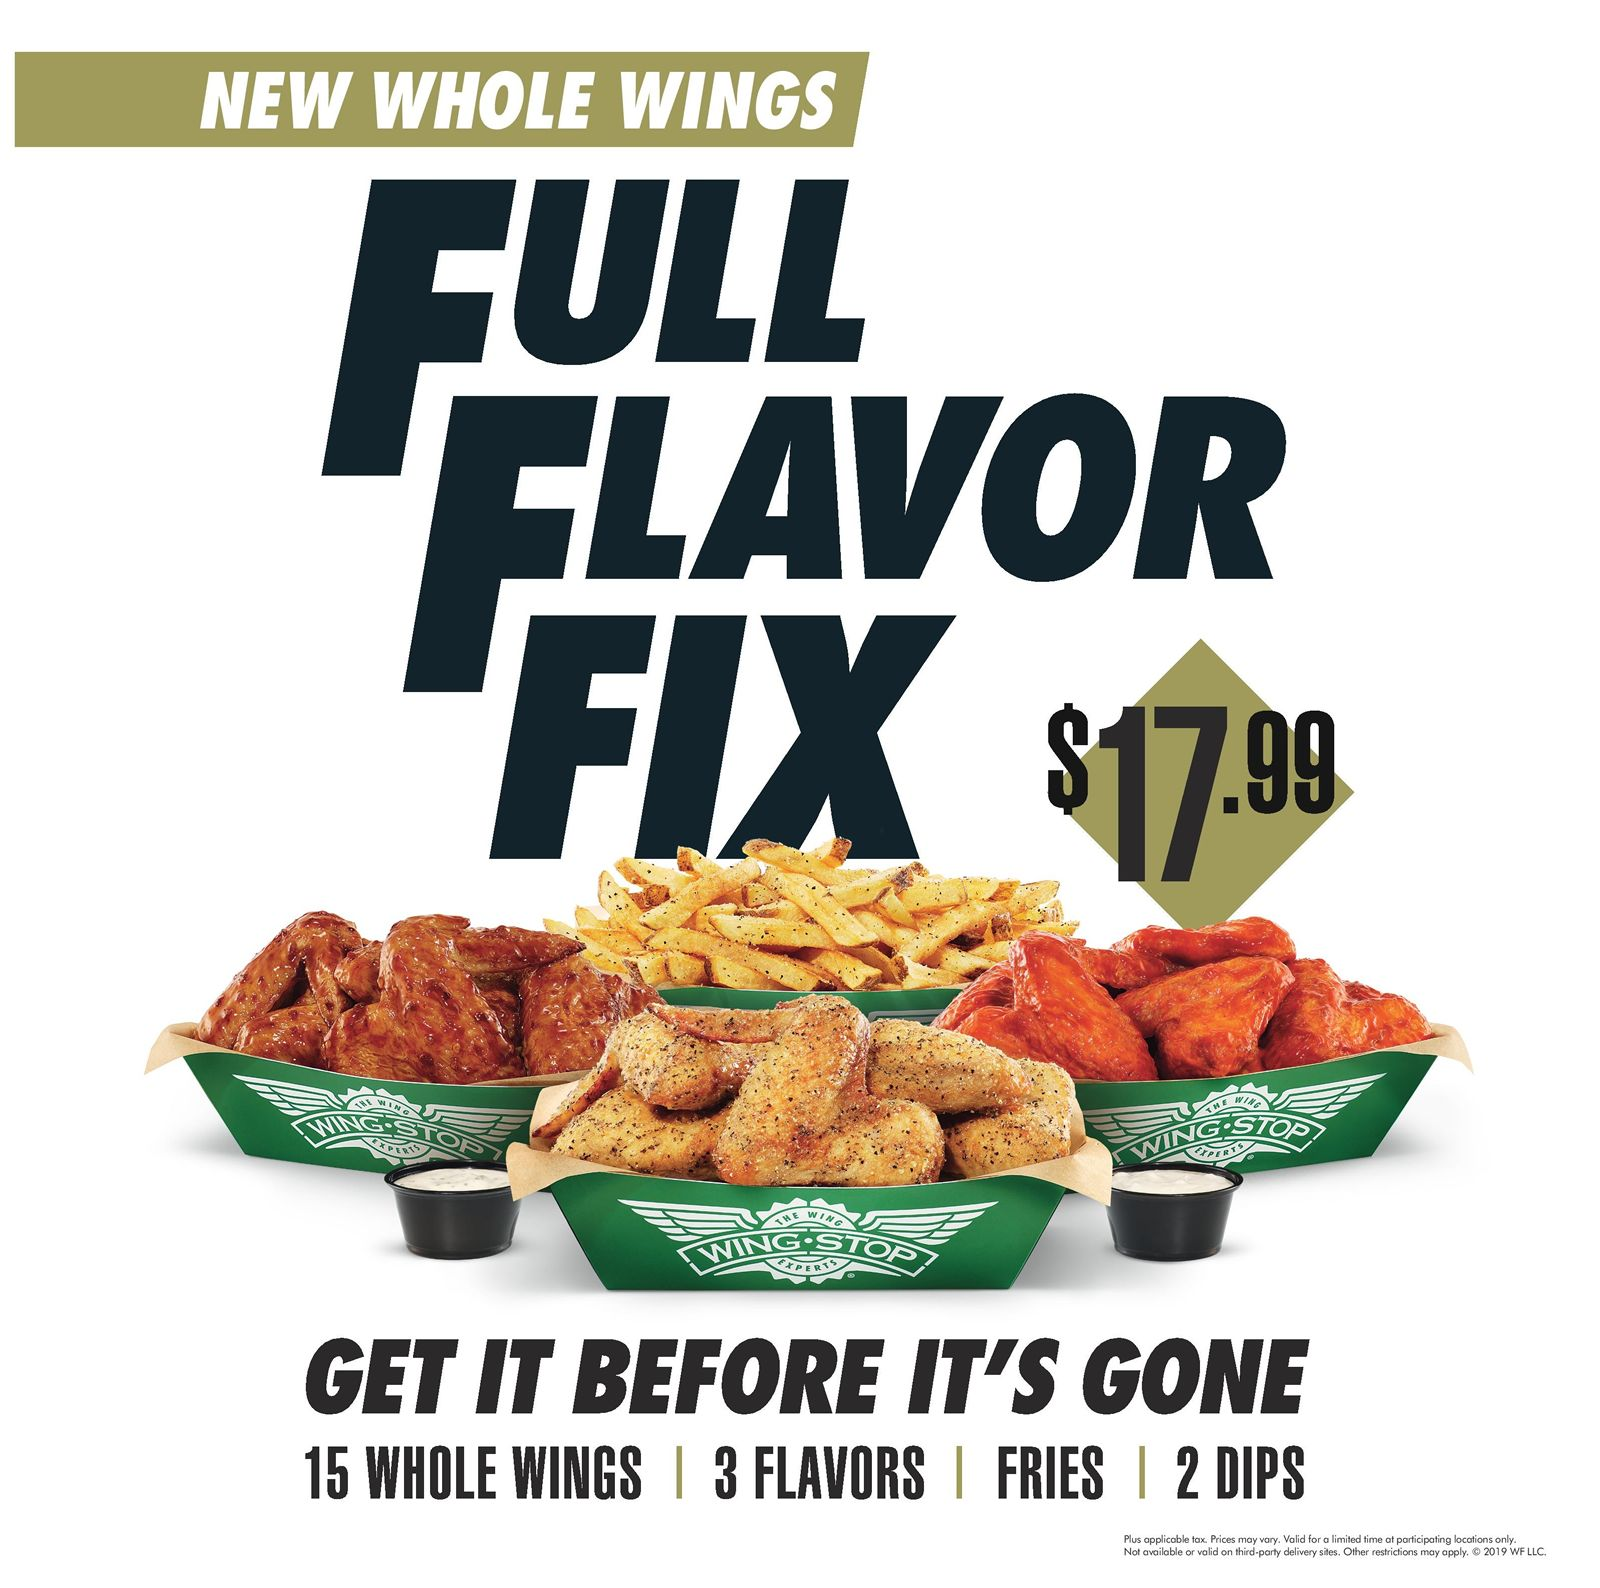 The Wing Experts Expand Menu to Include Crispy Whole Wings & Go All-in With Football